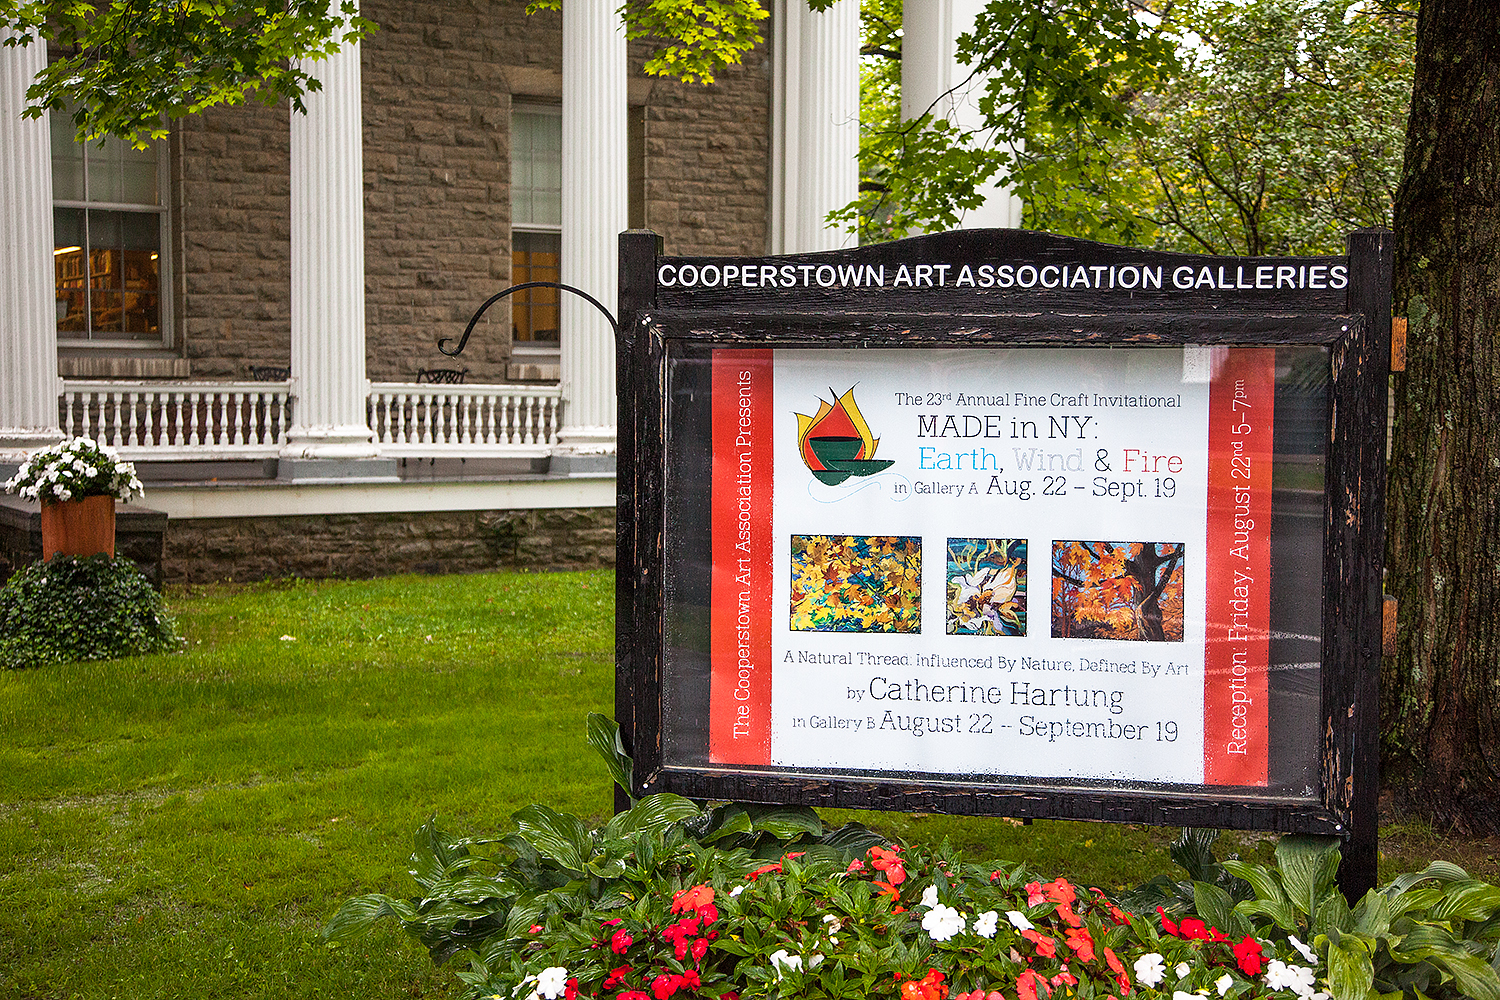 Solo Exhibition at Cooperstown Art Gallery 2014